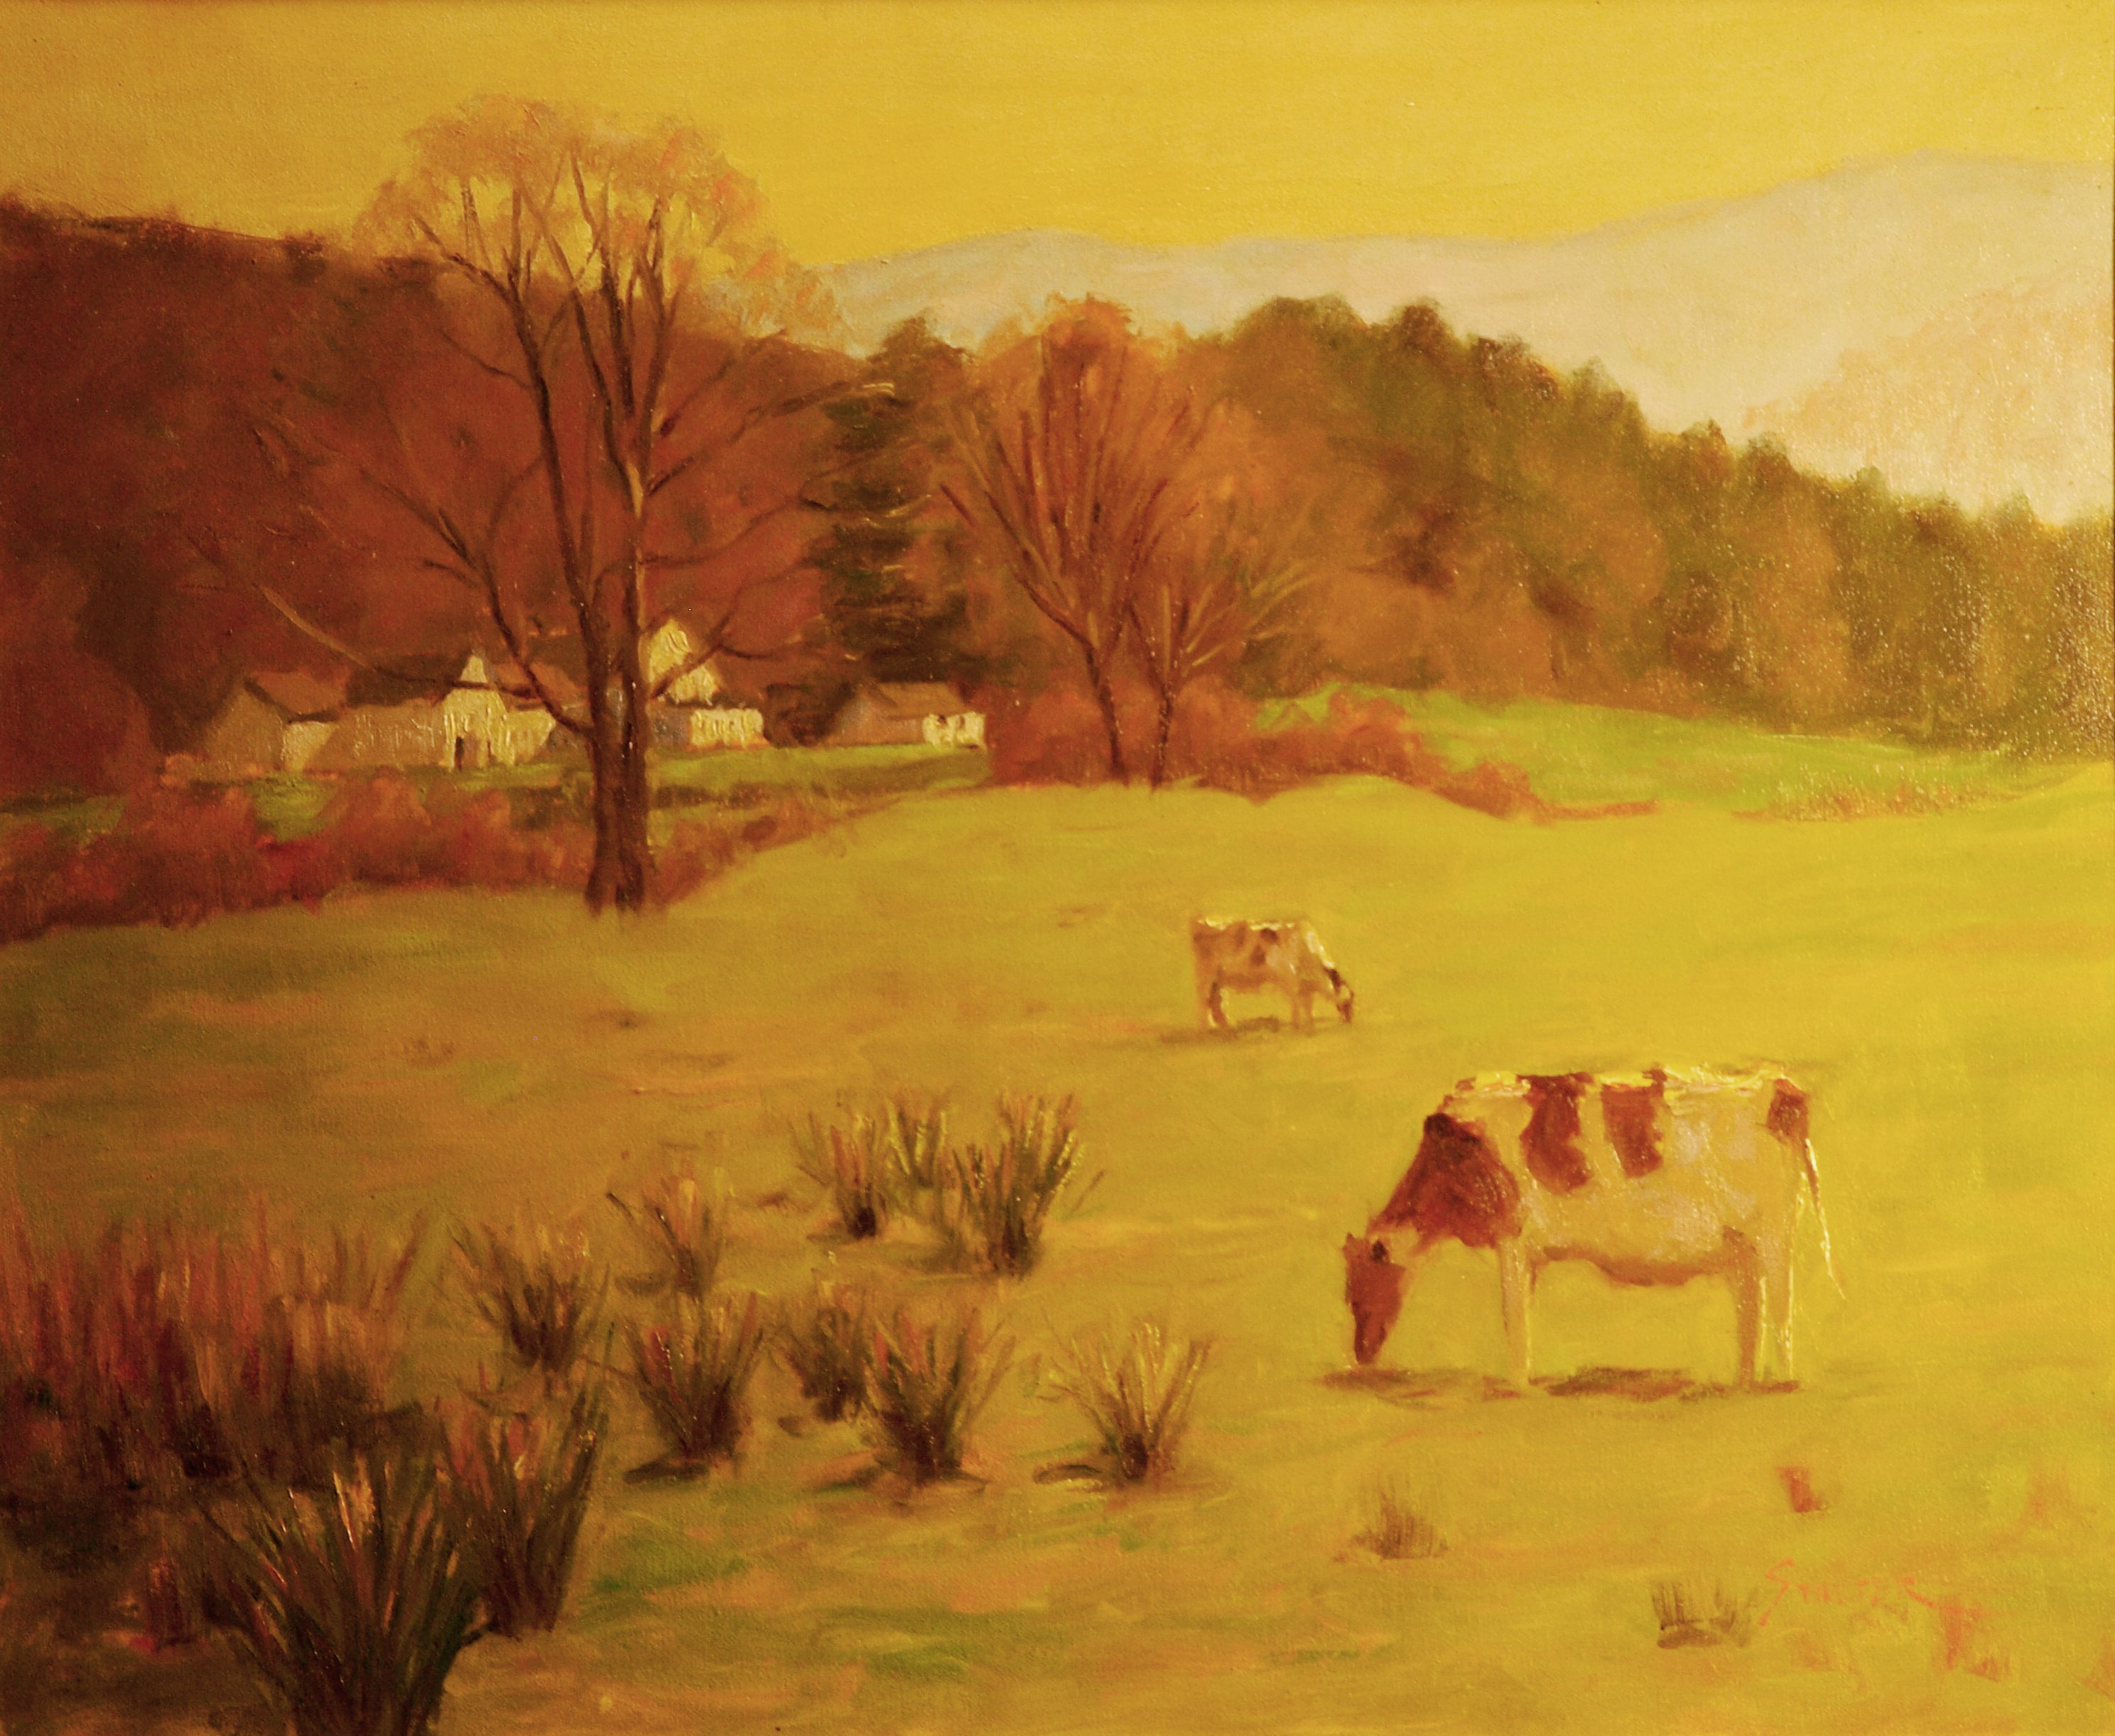 Pasture Near Kent, Oil on Canvas, 20 x 24 Inches, by Richard Stalter, $850